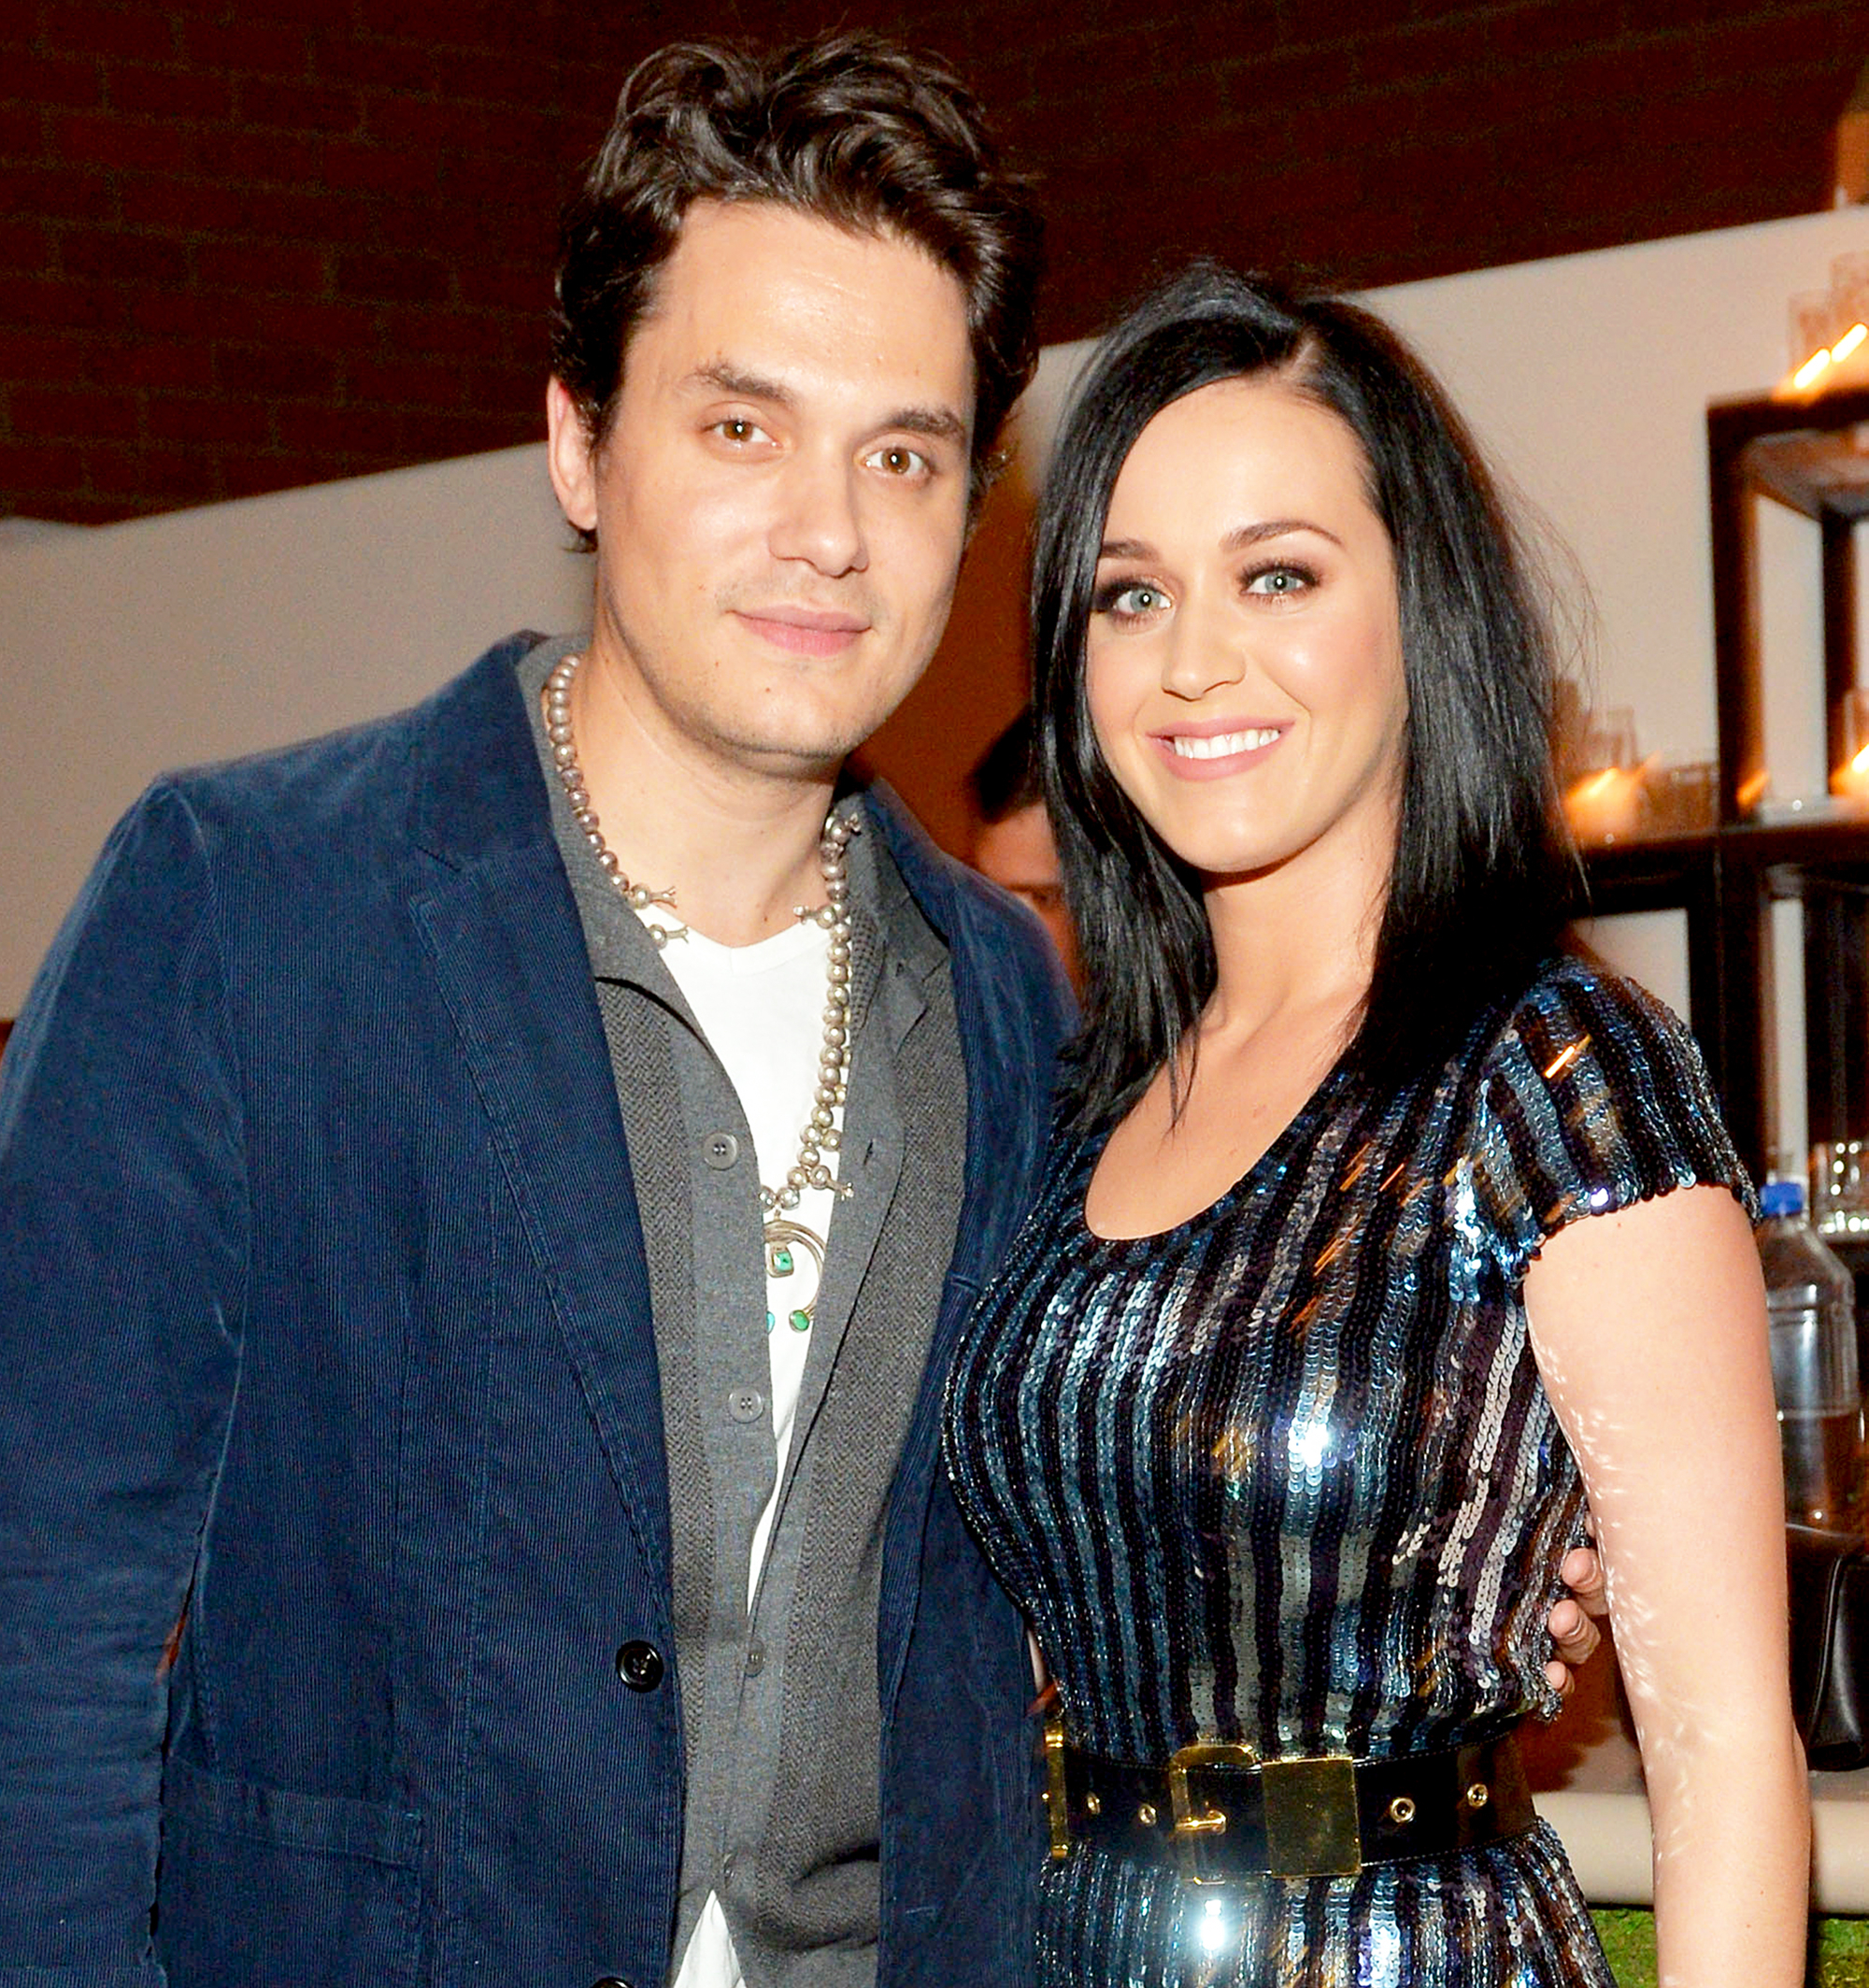 Katy perry dating 2013